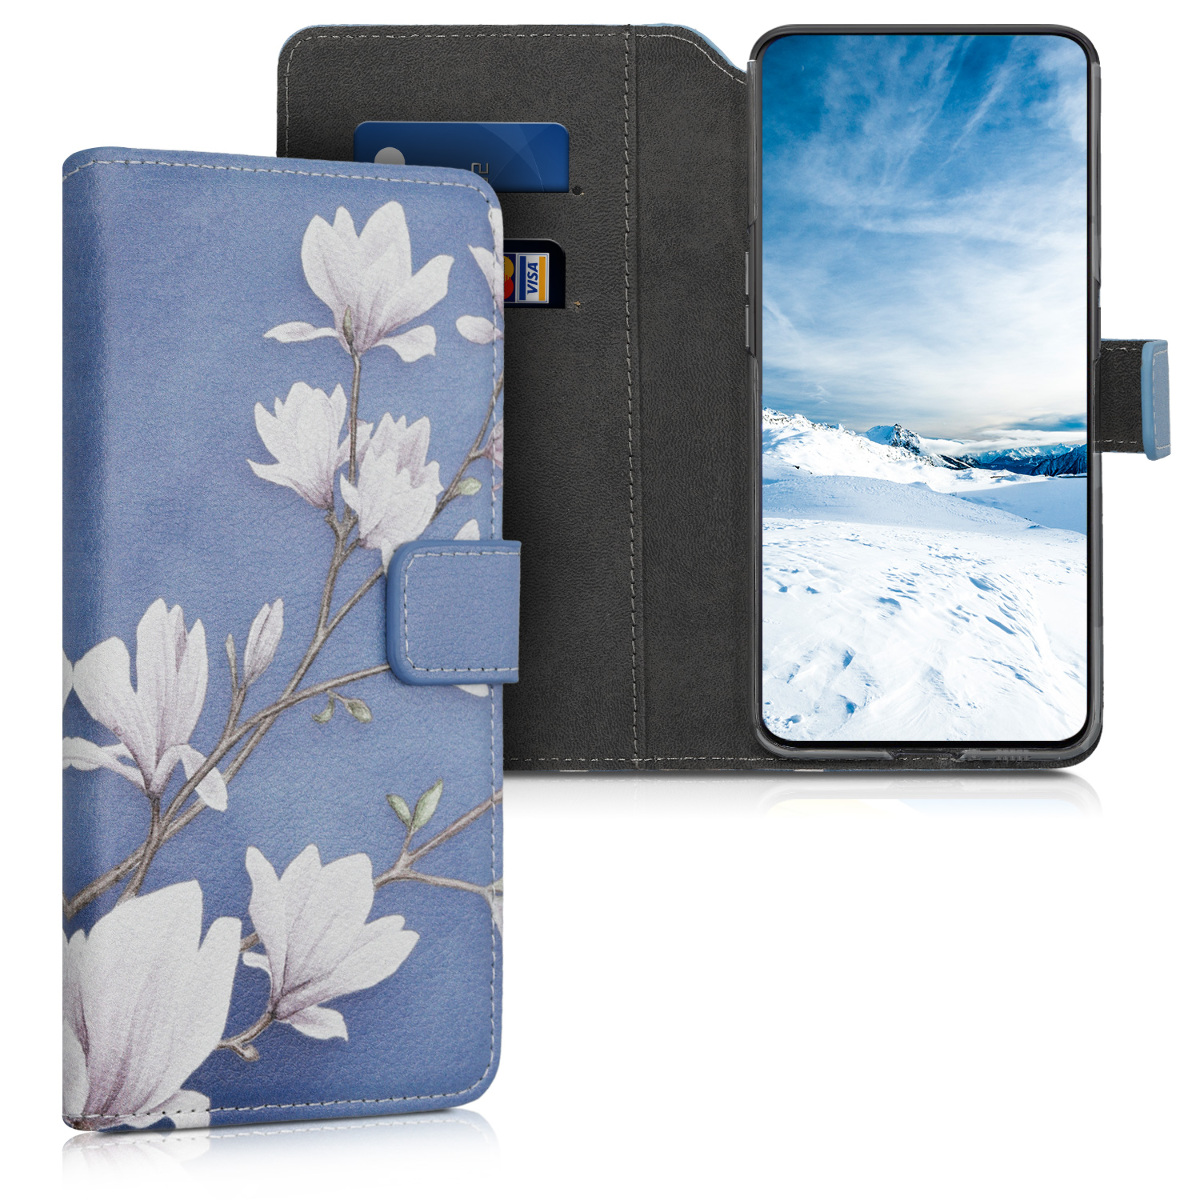 KW Θήκη - Πορτοφόλι Samsung Galaxy A80 - PU Leather Protective Flip Cover - Taupe / White / Blue Grey (48446.03)